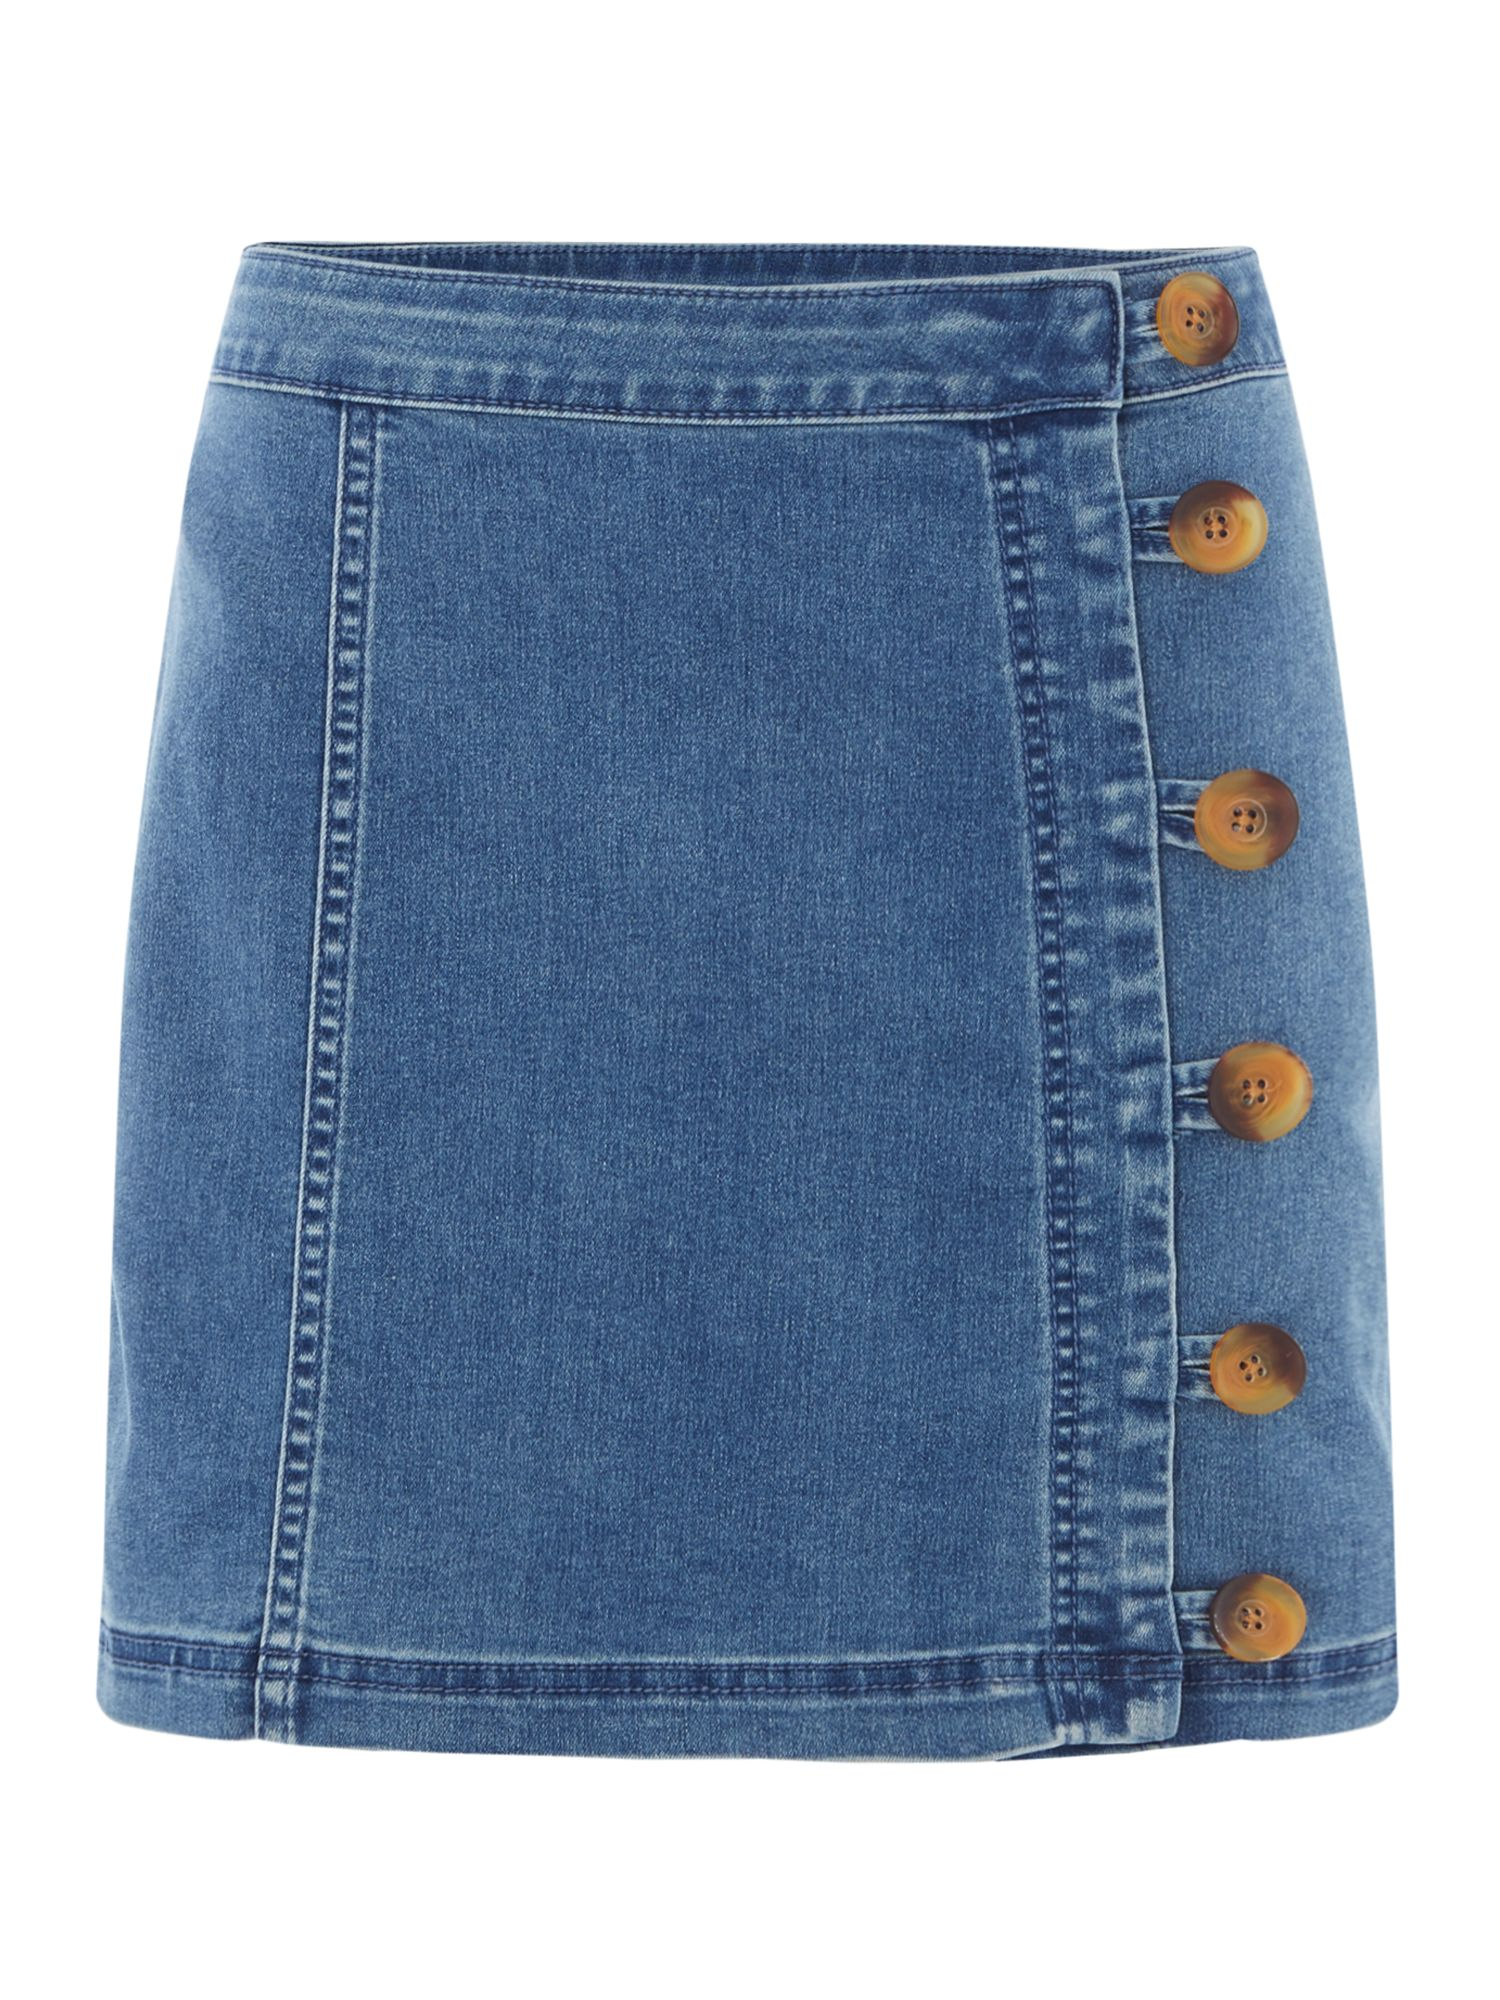 Free People Denim Little Daisies Button Up Mini Skirt, Denim Mid Wash